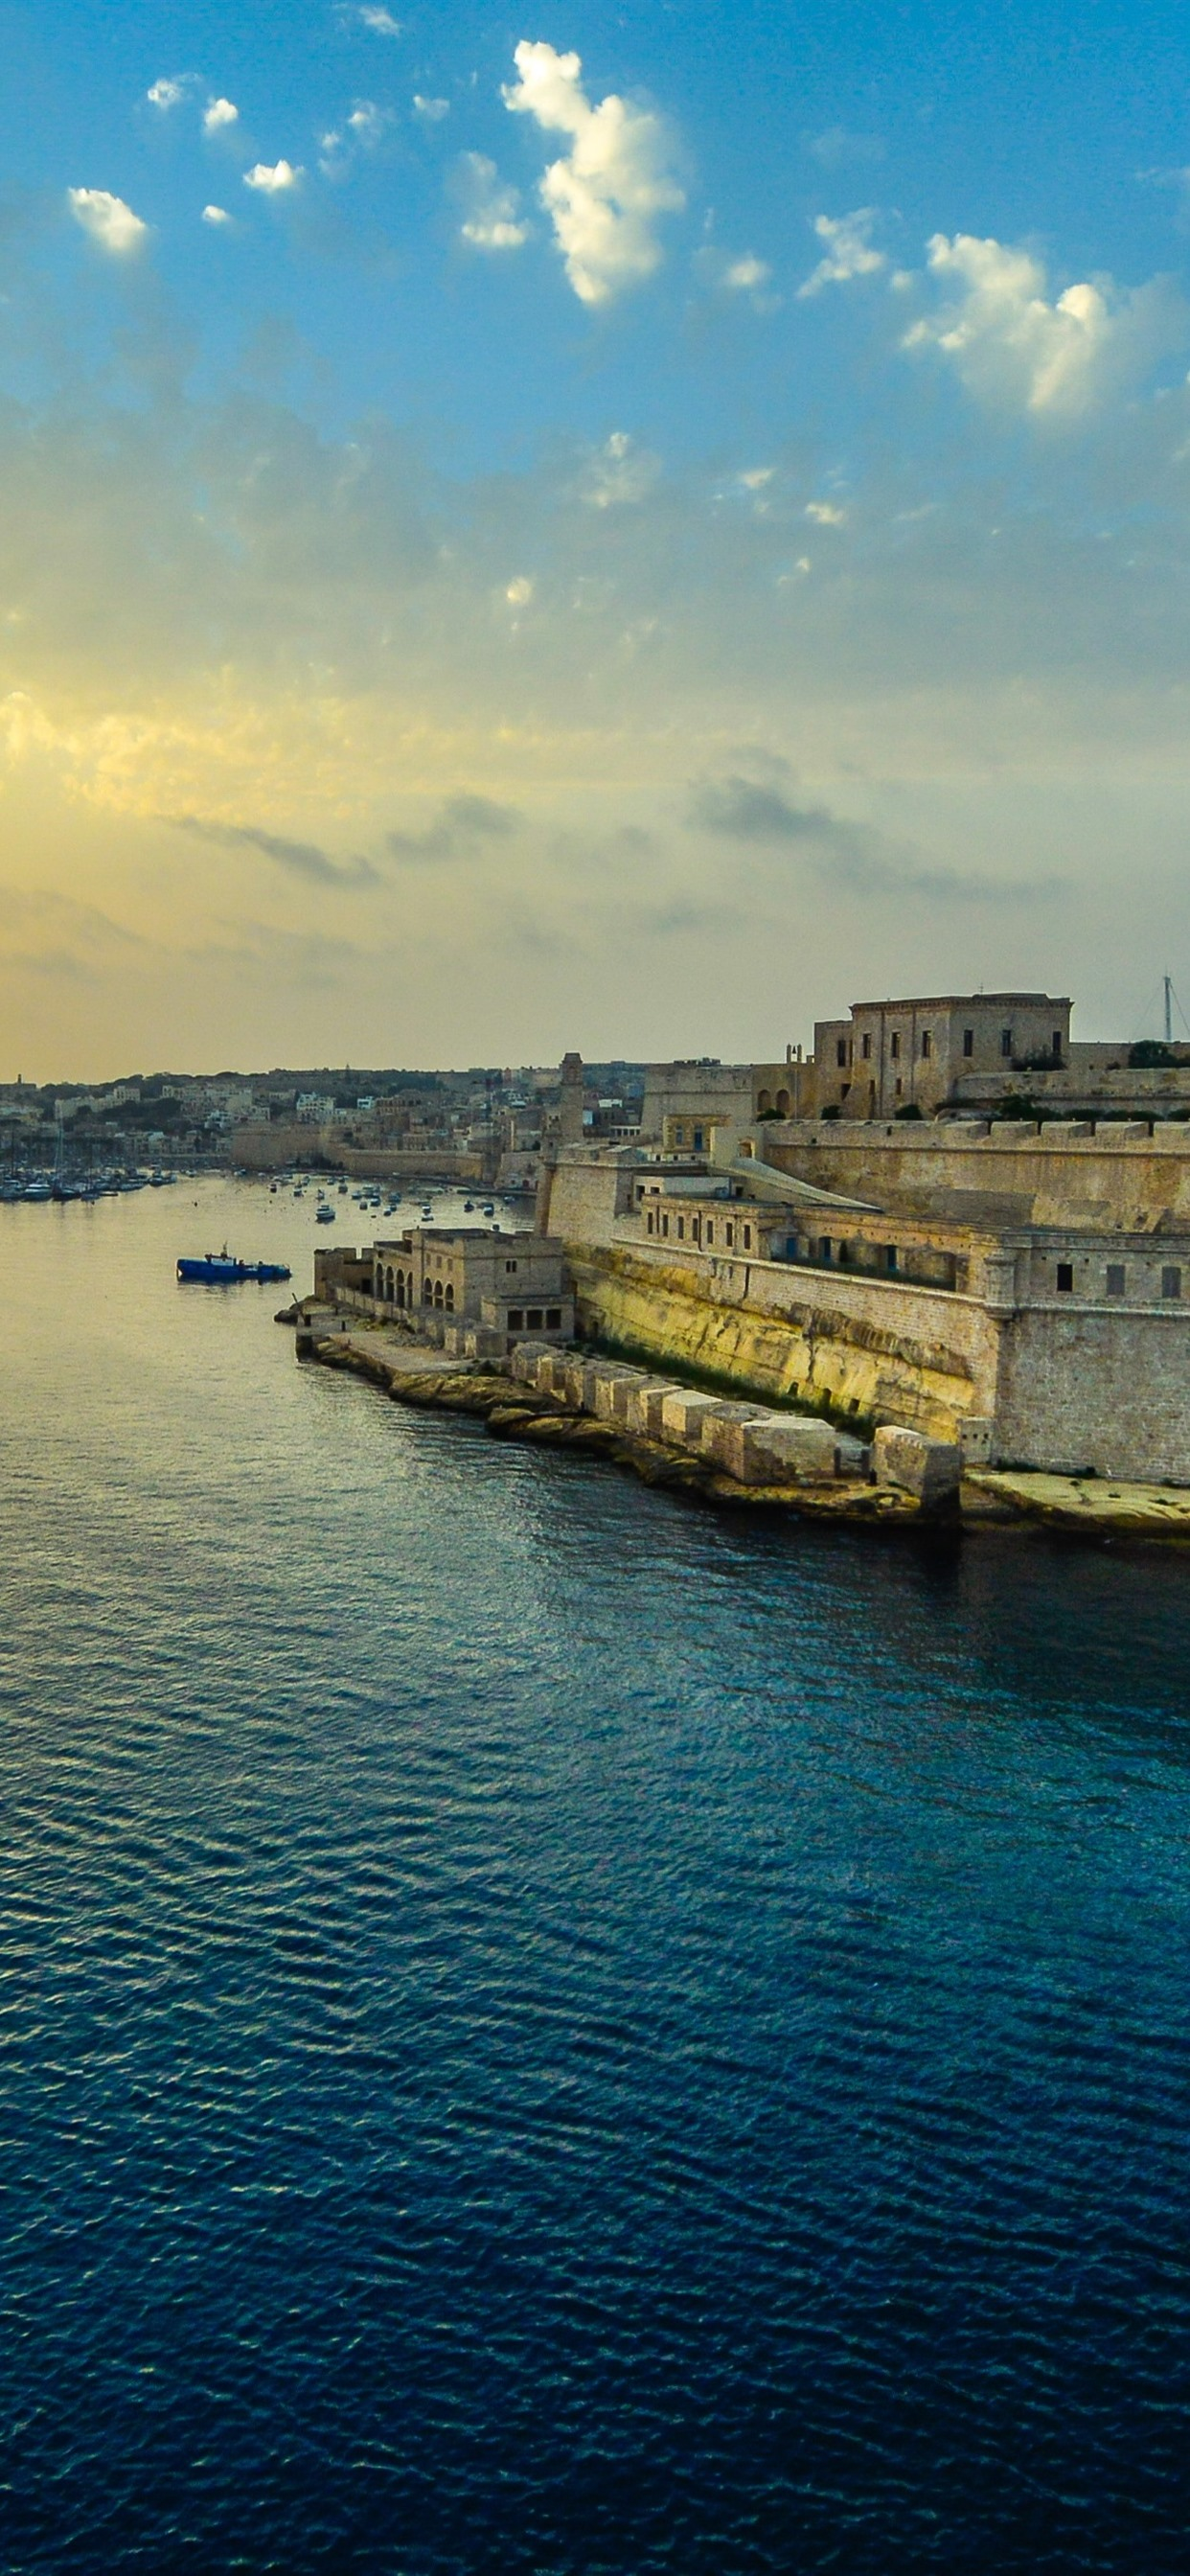 Malta Valletta Harbor Sunset Clouds Sea City 1242x2688 Iphone 11 Pro Xs Max Wallpaper Background Picture Image